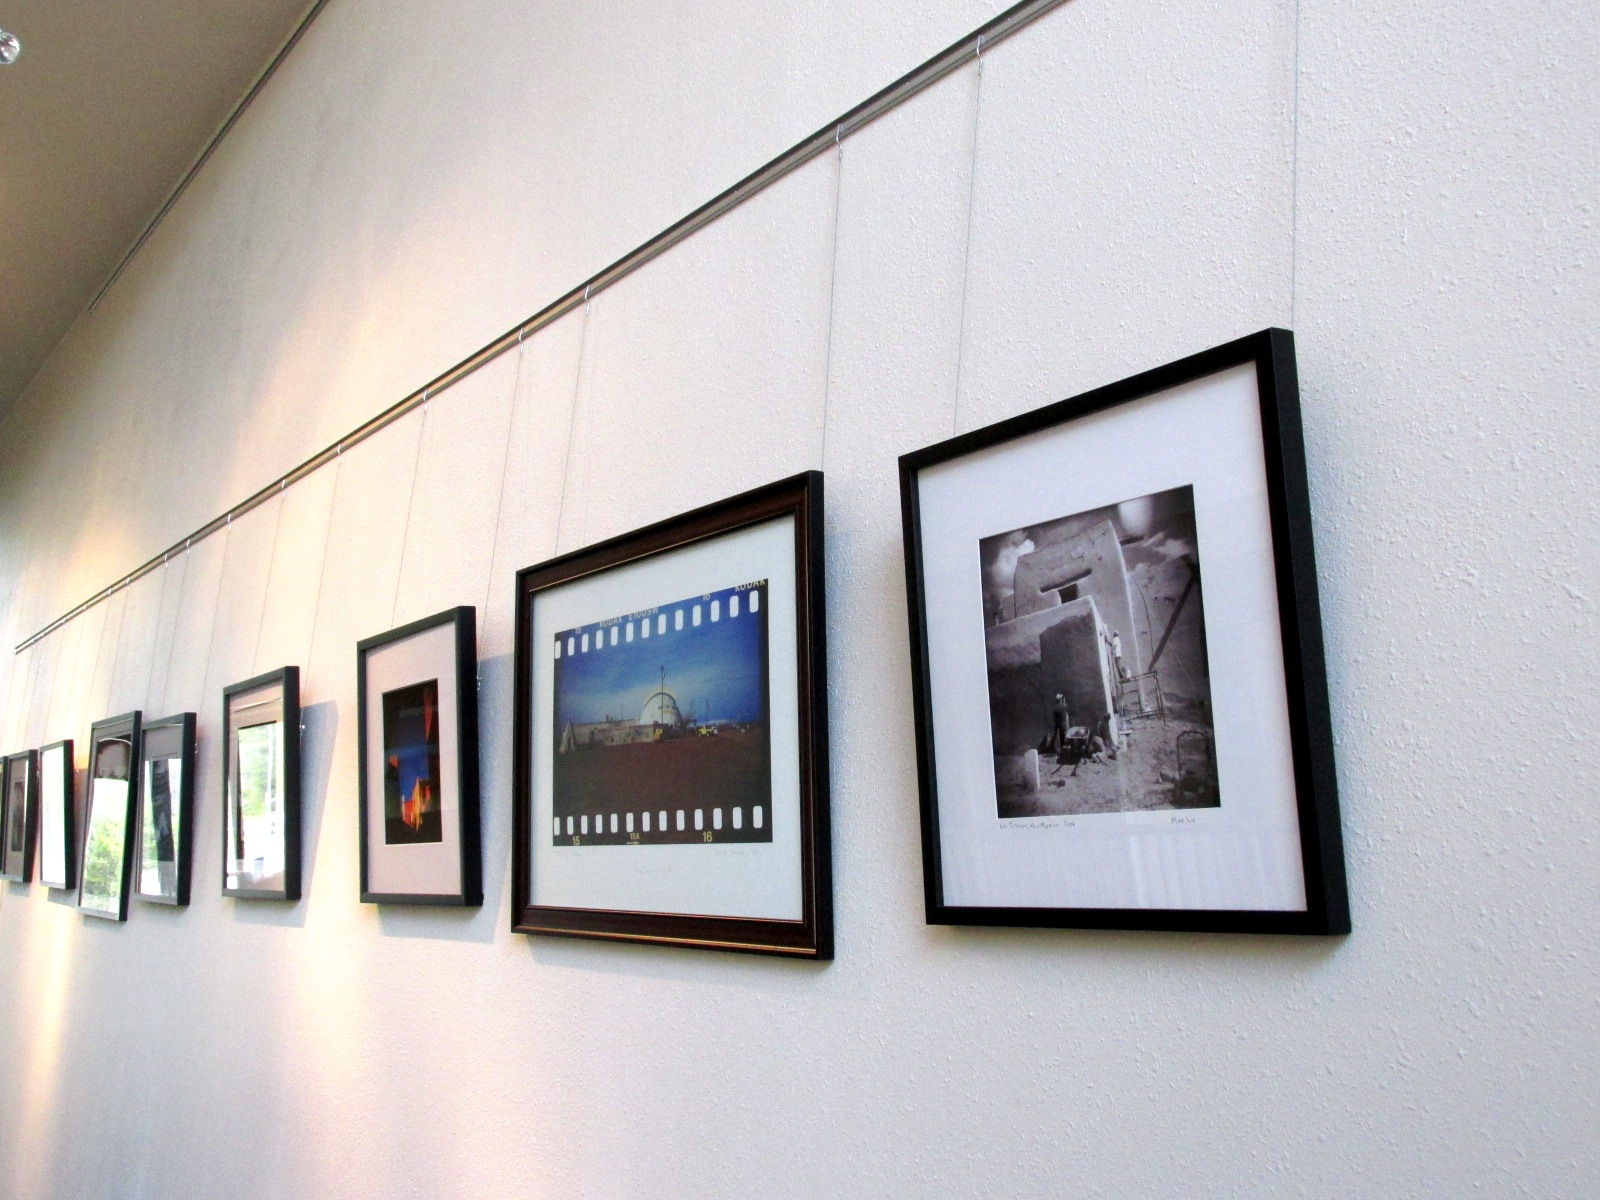 Photo of several pieces of art hanging on a wall.